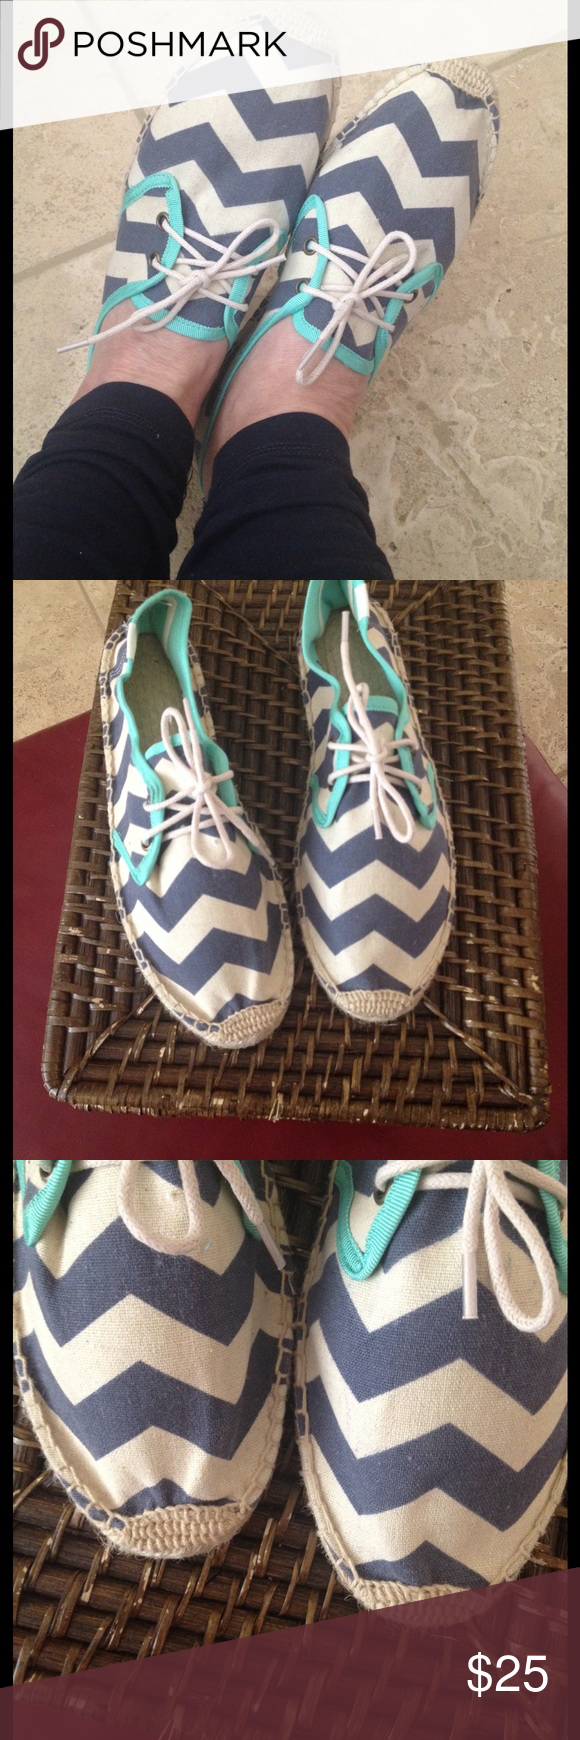 SOLUDOS CANVAS LACE-UP ESPADRILLES CHEVRON SZ 40 Never worn, Chevron pattern navy/cream trimmed in teal. These size 40 comparable to US 9-9.5 Soludos Shoes Espadrilles